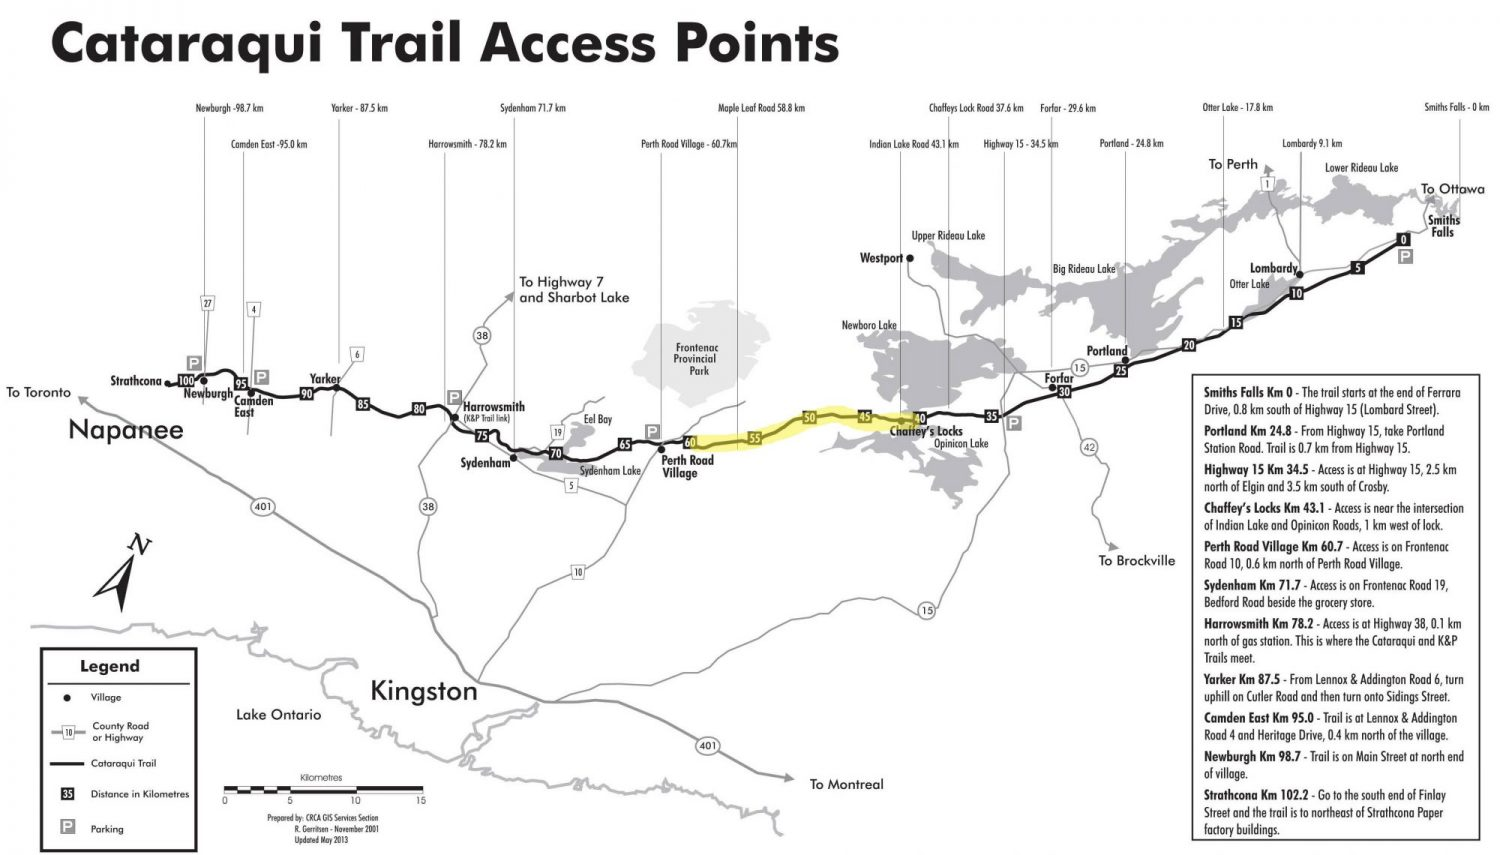 Cataraqui Rail Trail Access Points Map